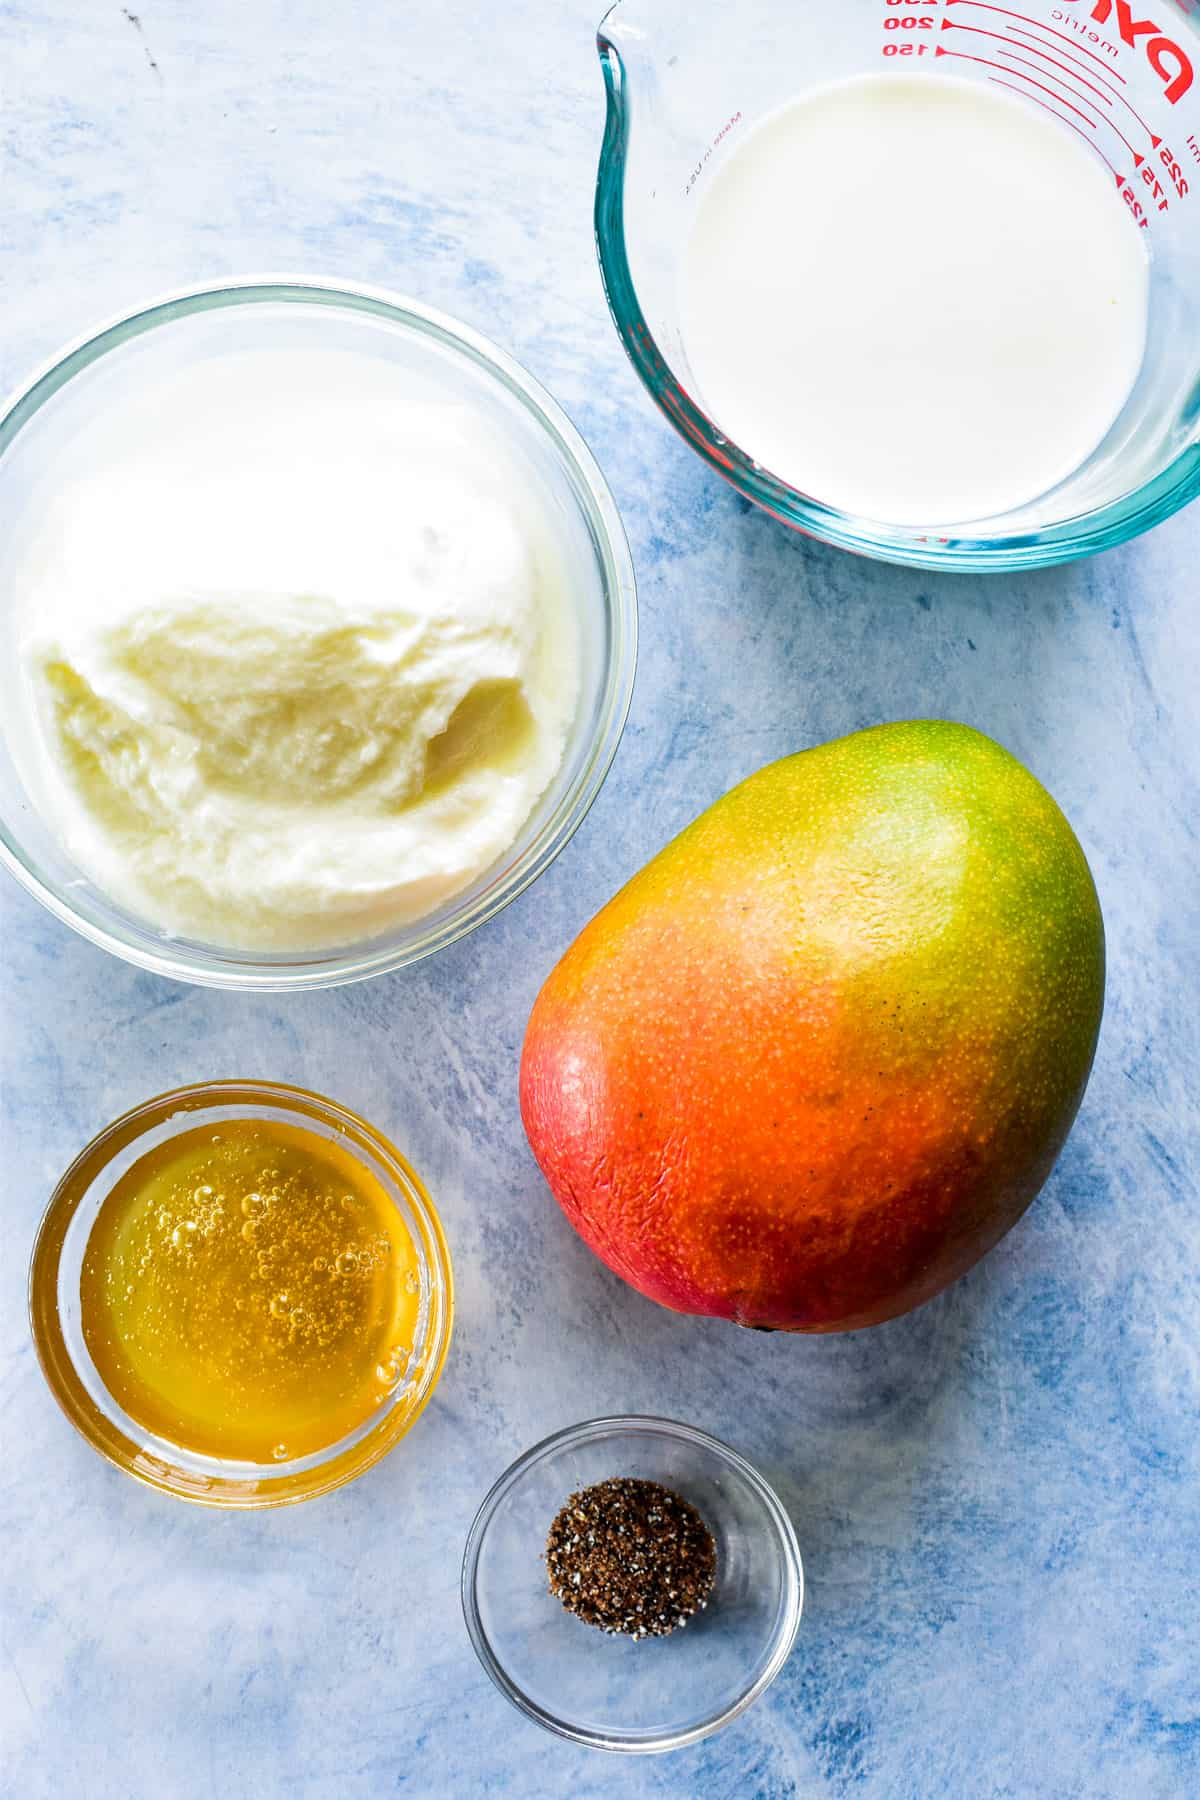 Mango Lassi ingredients on a blue background